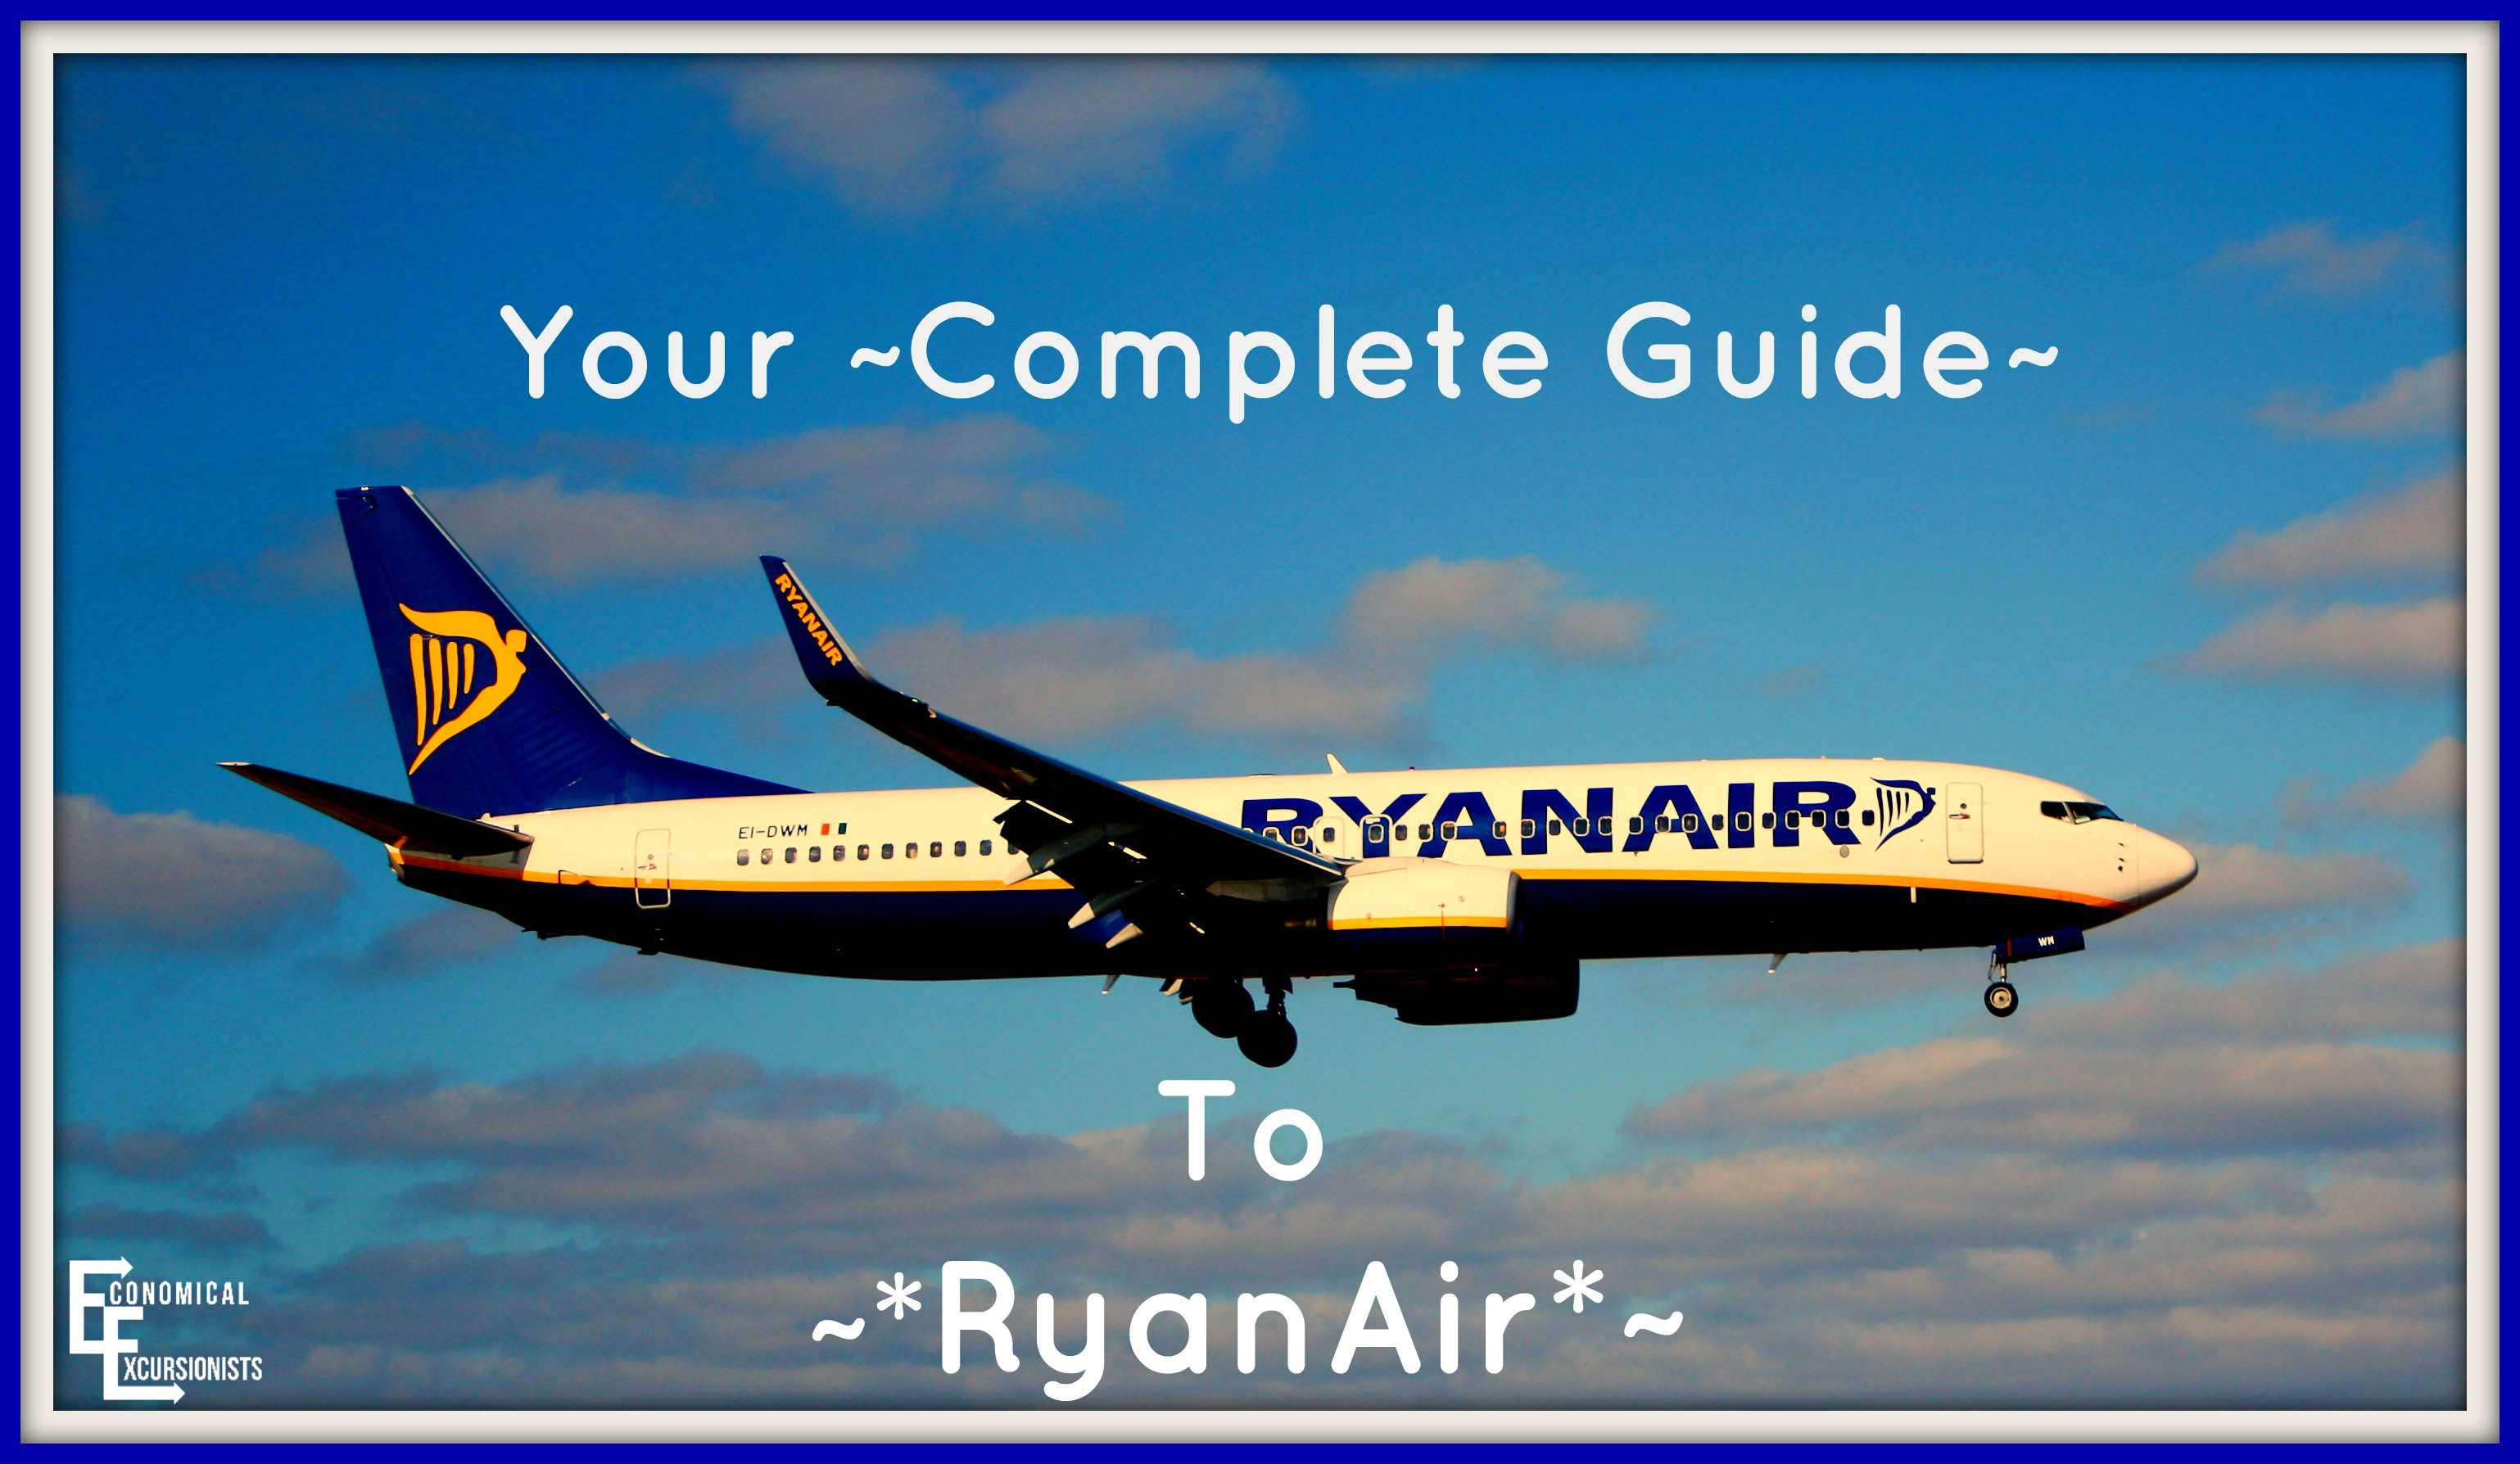 Frequently Asked Questions FAQS for RyanAir